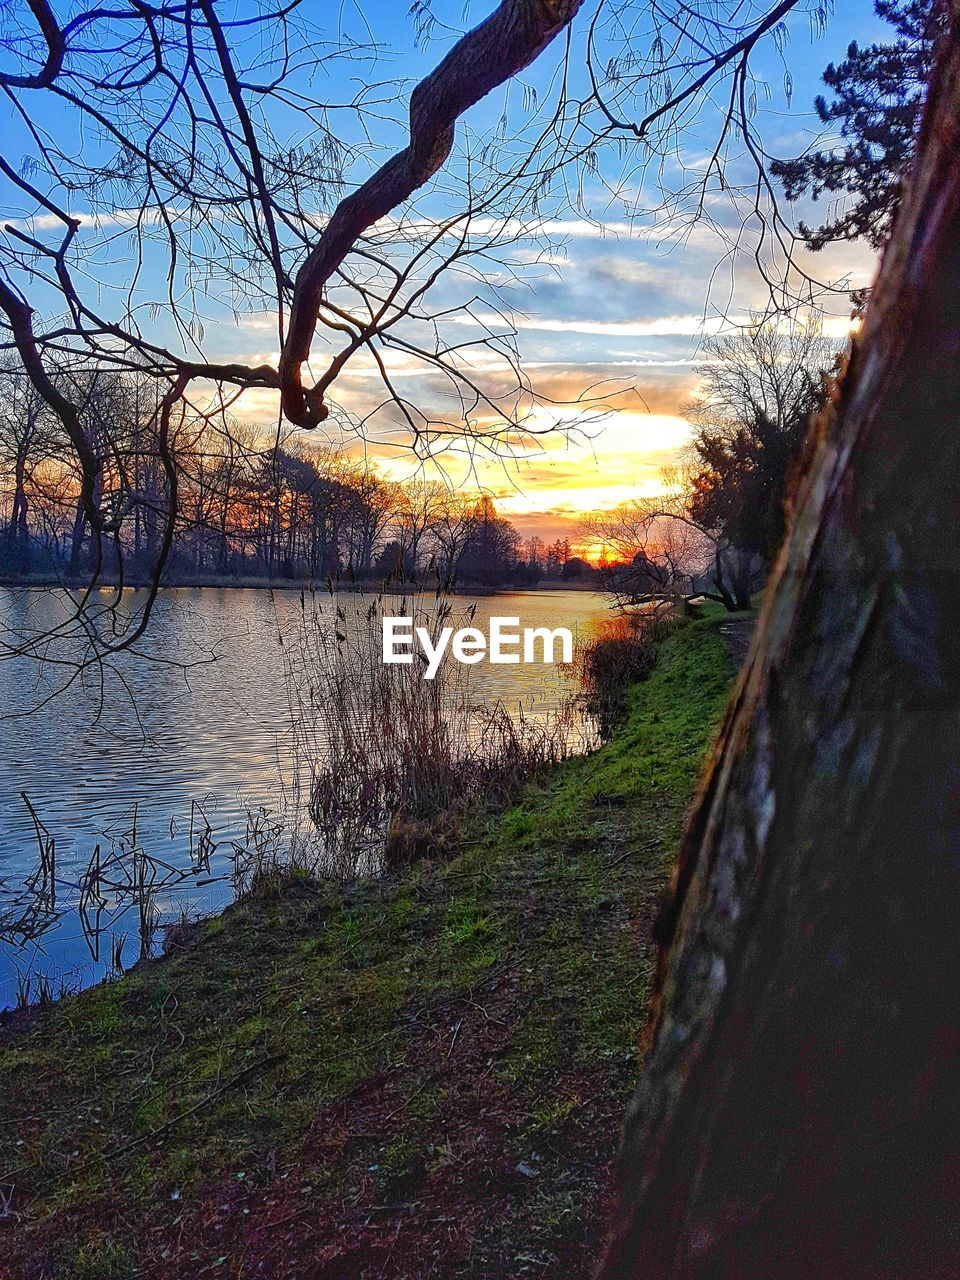 sunset, lake, water, tree, nature, tranquil scene, beauty in nature, scenics, tranquility, bare tree, grass, no people, reflection, outdoors, sky, landscape, day